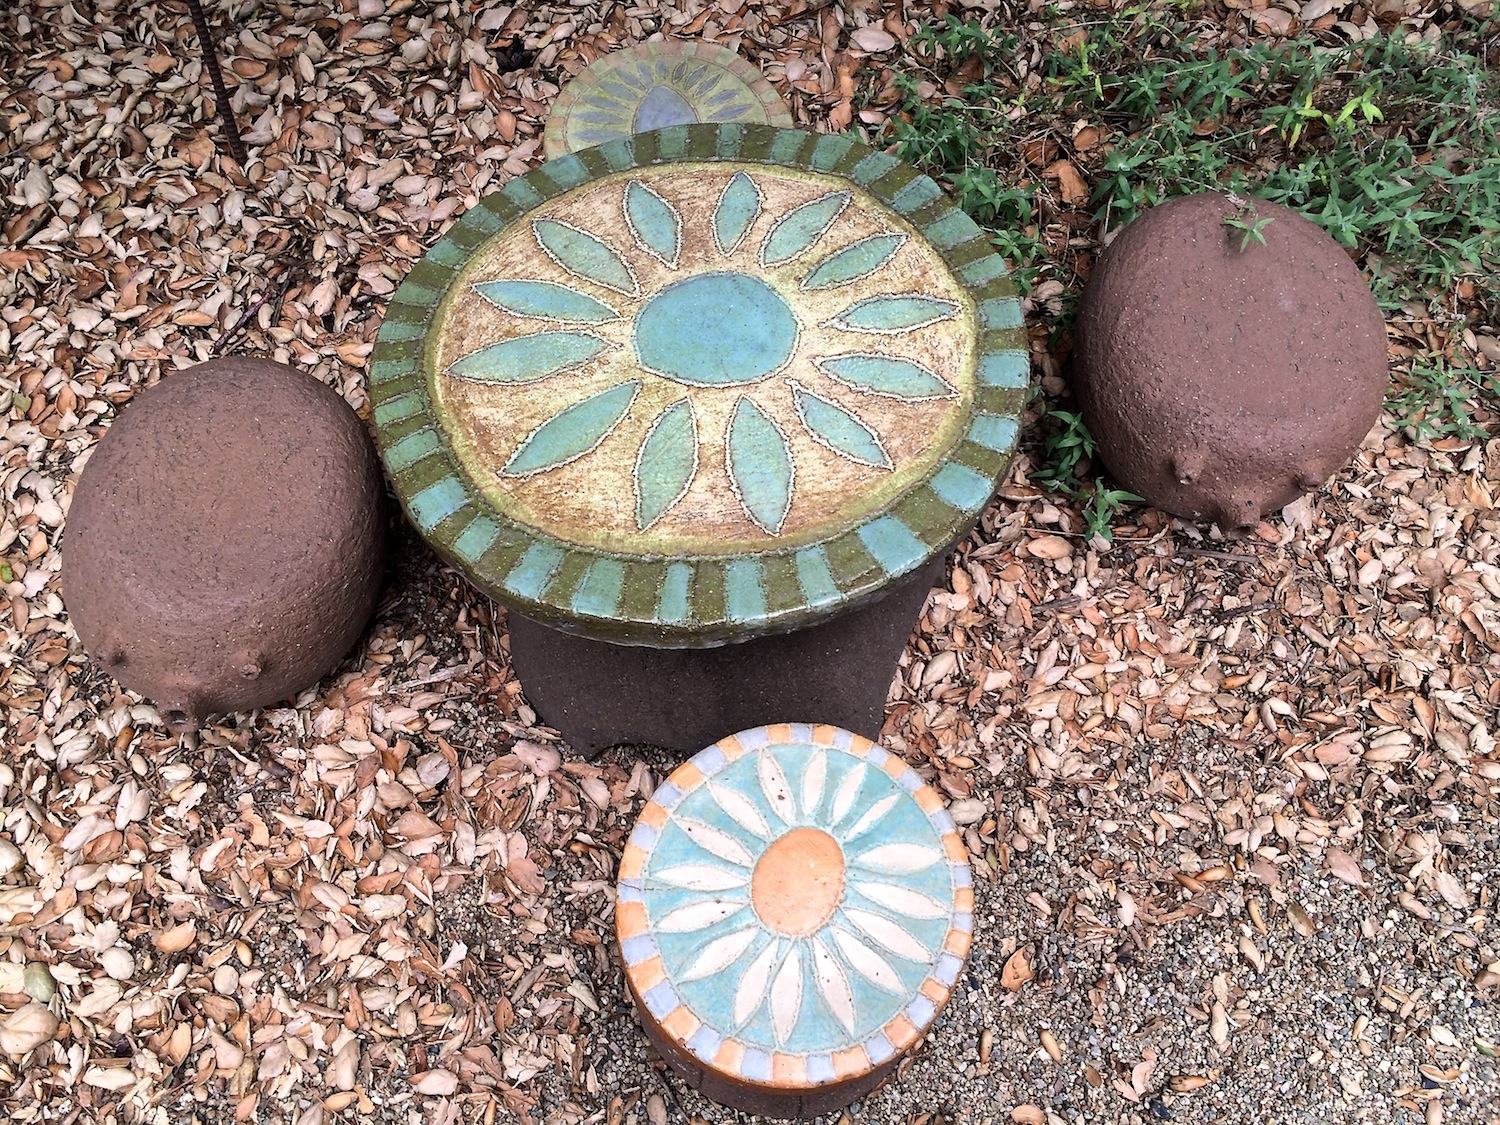 A vintage flower table and stools accompanied by Stan's whimsical animal stools.